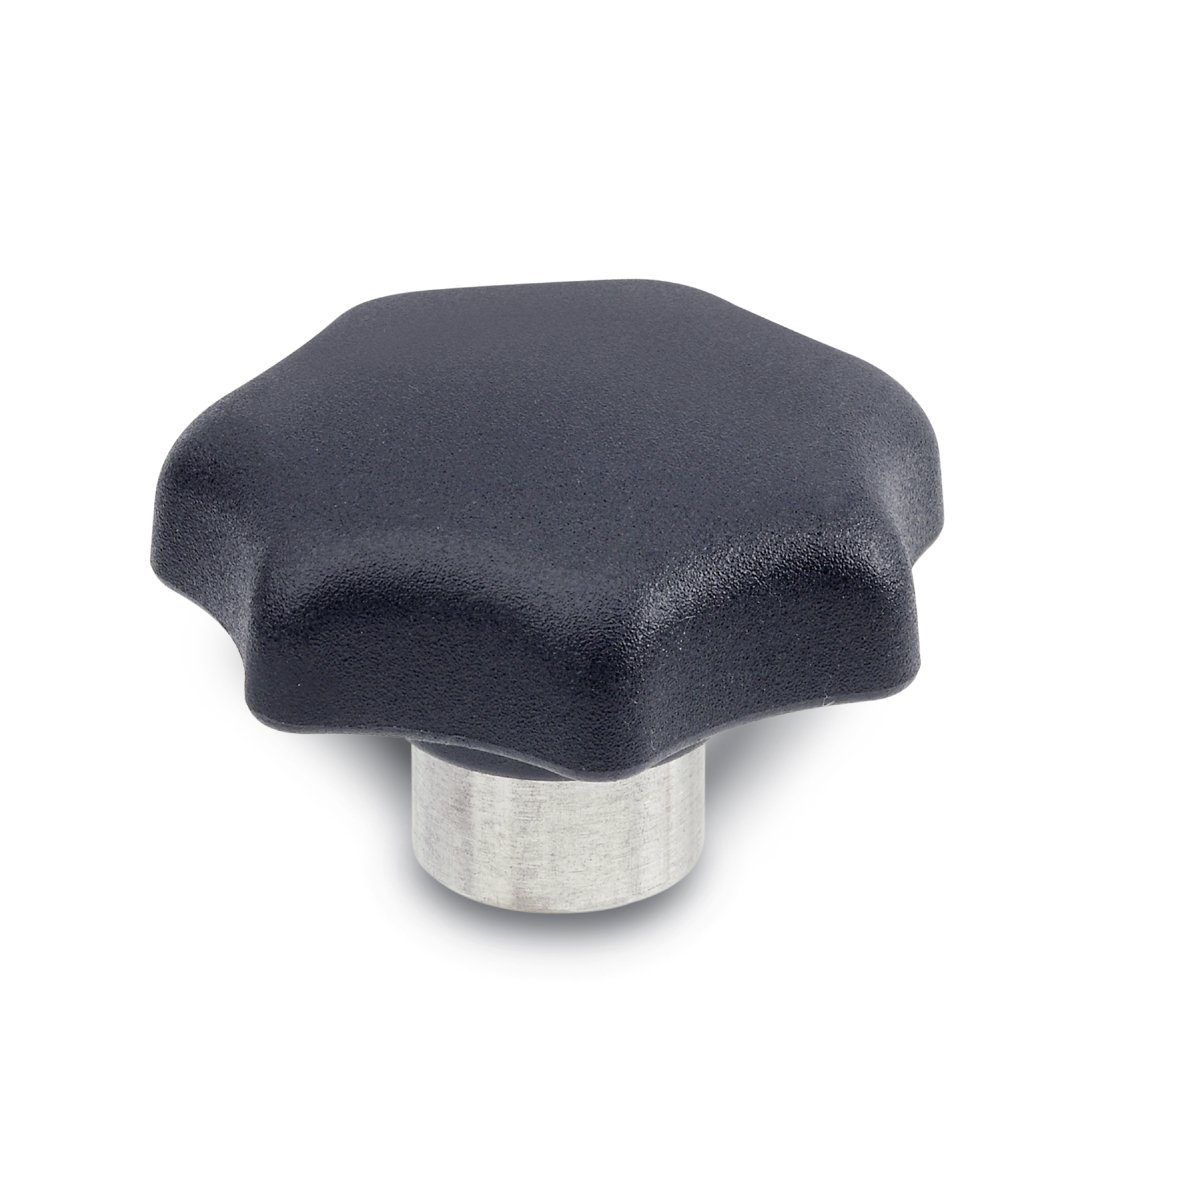 JW Winco Glass Filled Nylon Plastic Tapped Hand Knob with Stainless Steel Hub, Threaded Hole, 1/2''-13 Thread Size x 45/64'' Thread Depth, 1-31/32'' Head Diameter (Pack of 1)